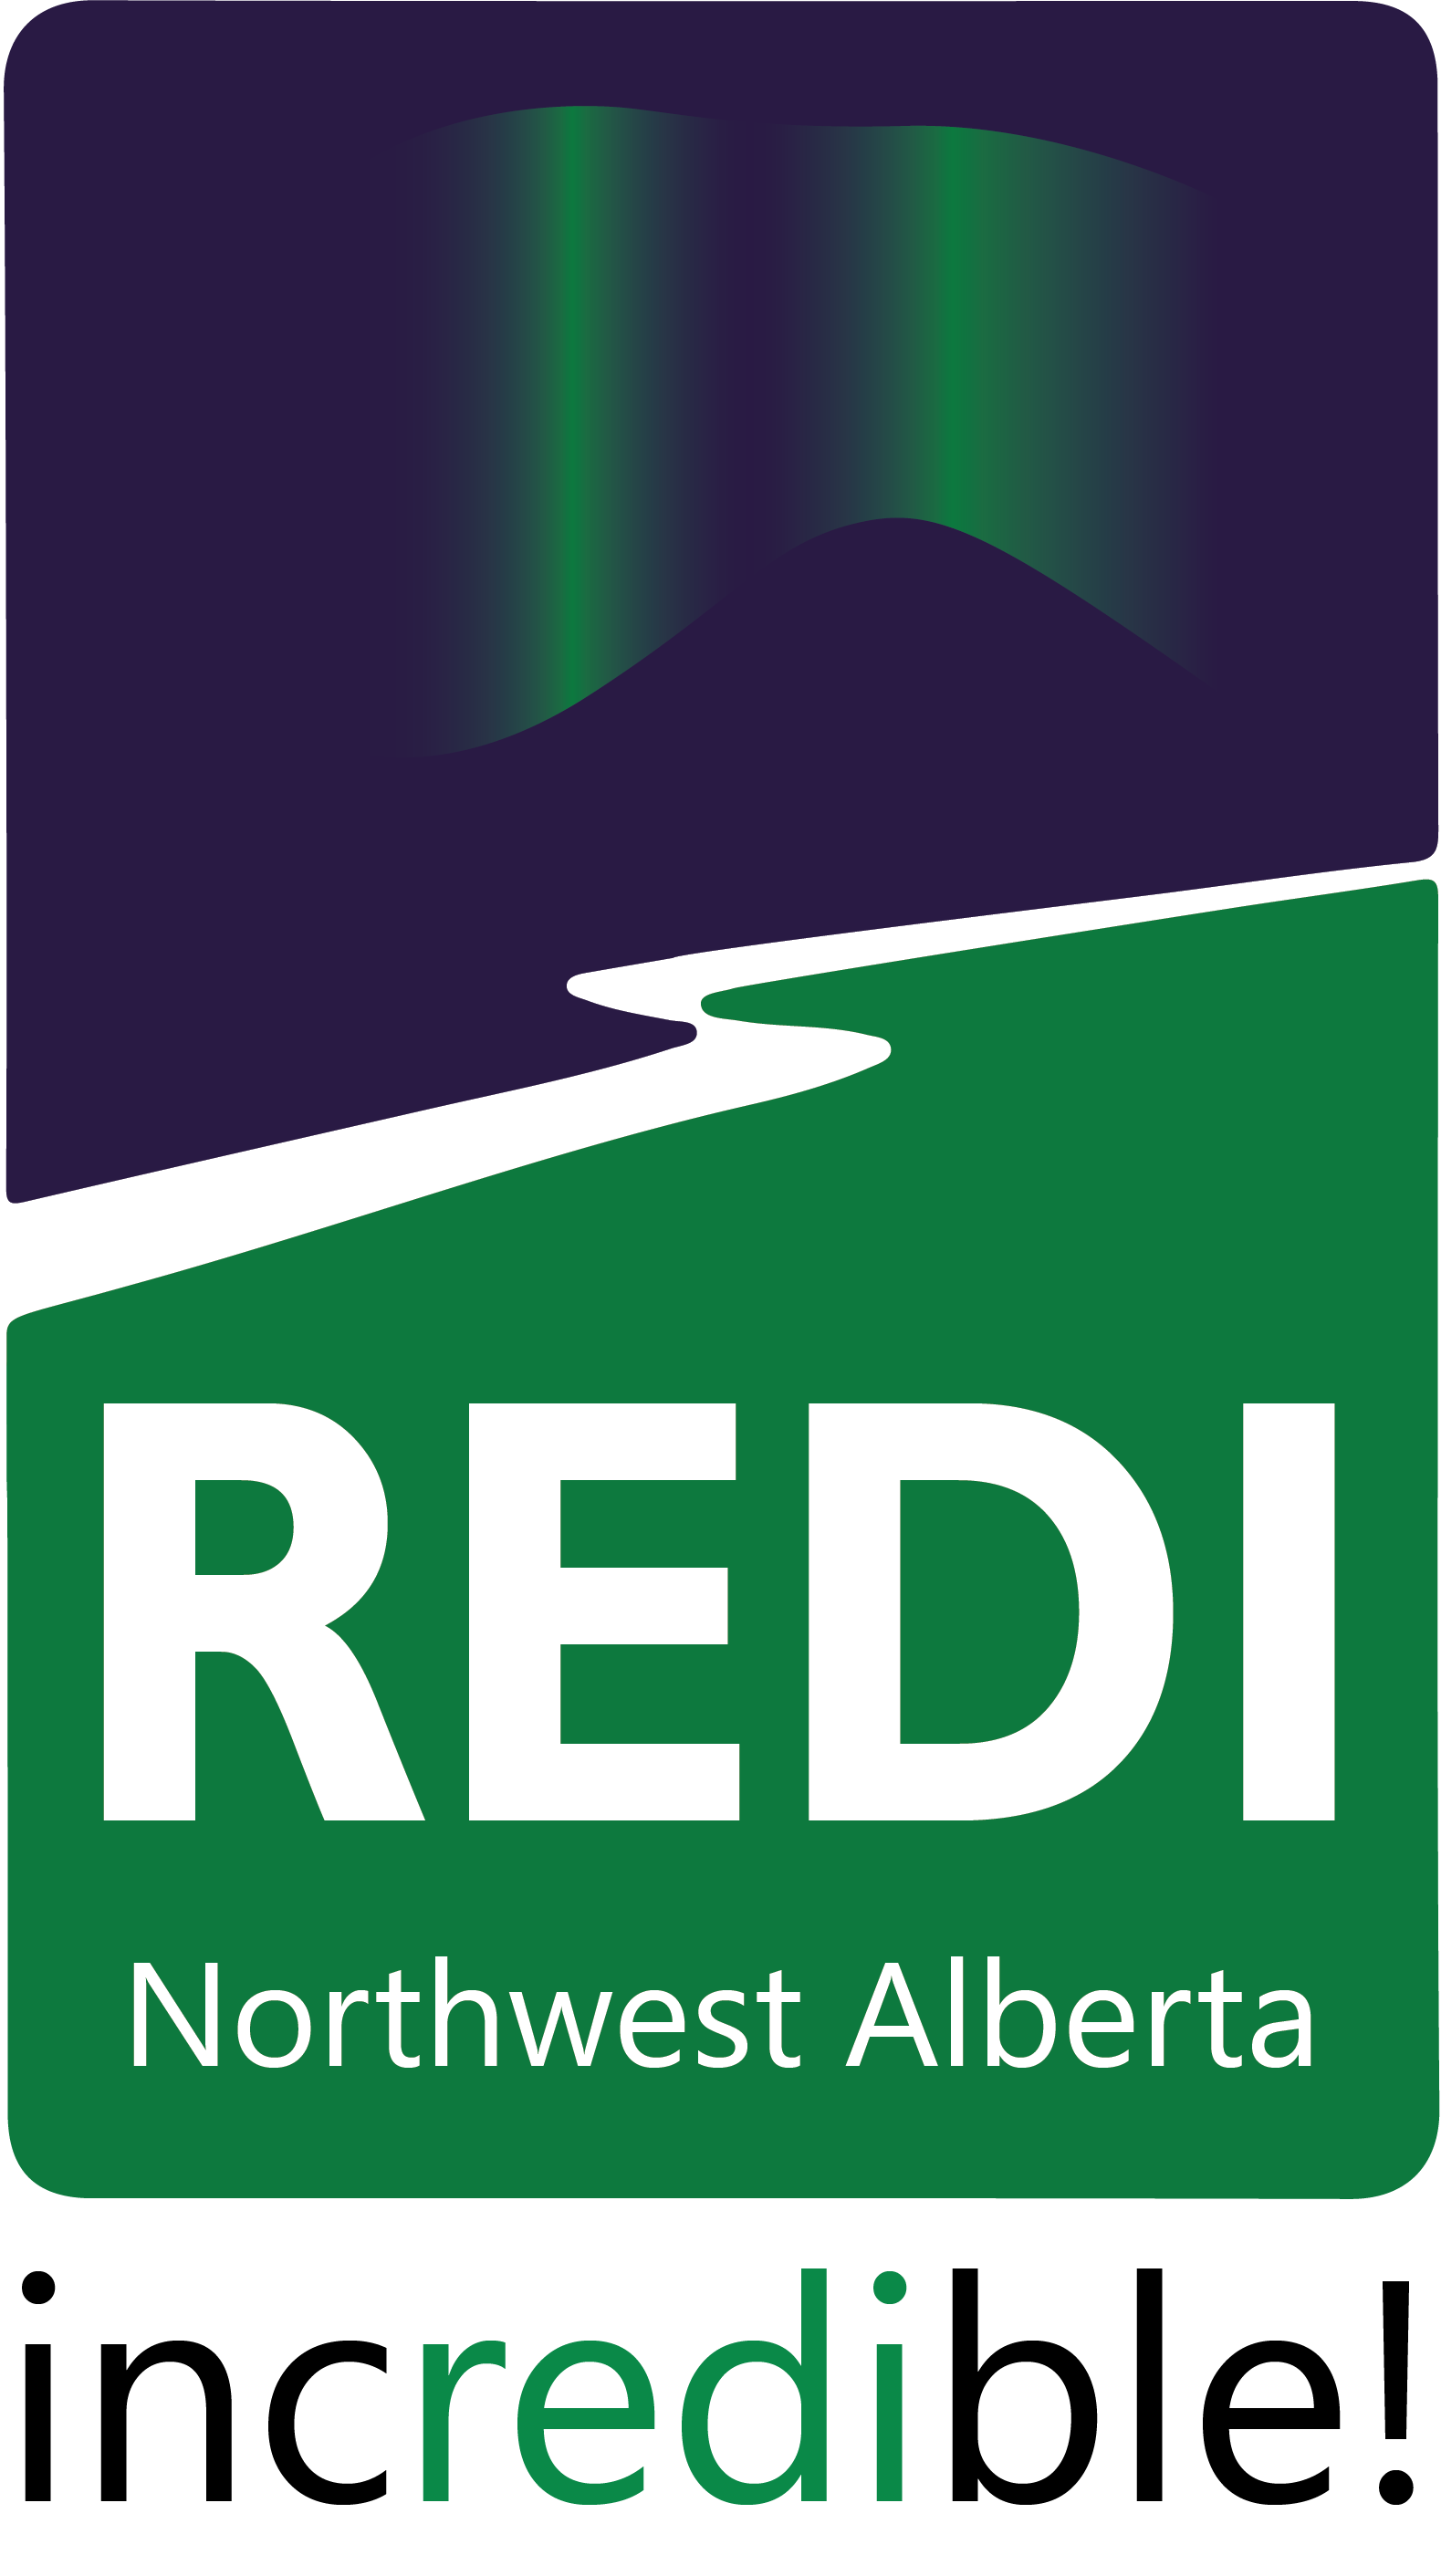 REDI Region - Regional Economic Development Initiative - Northwest Alberta